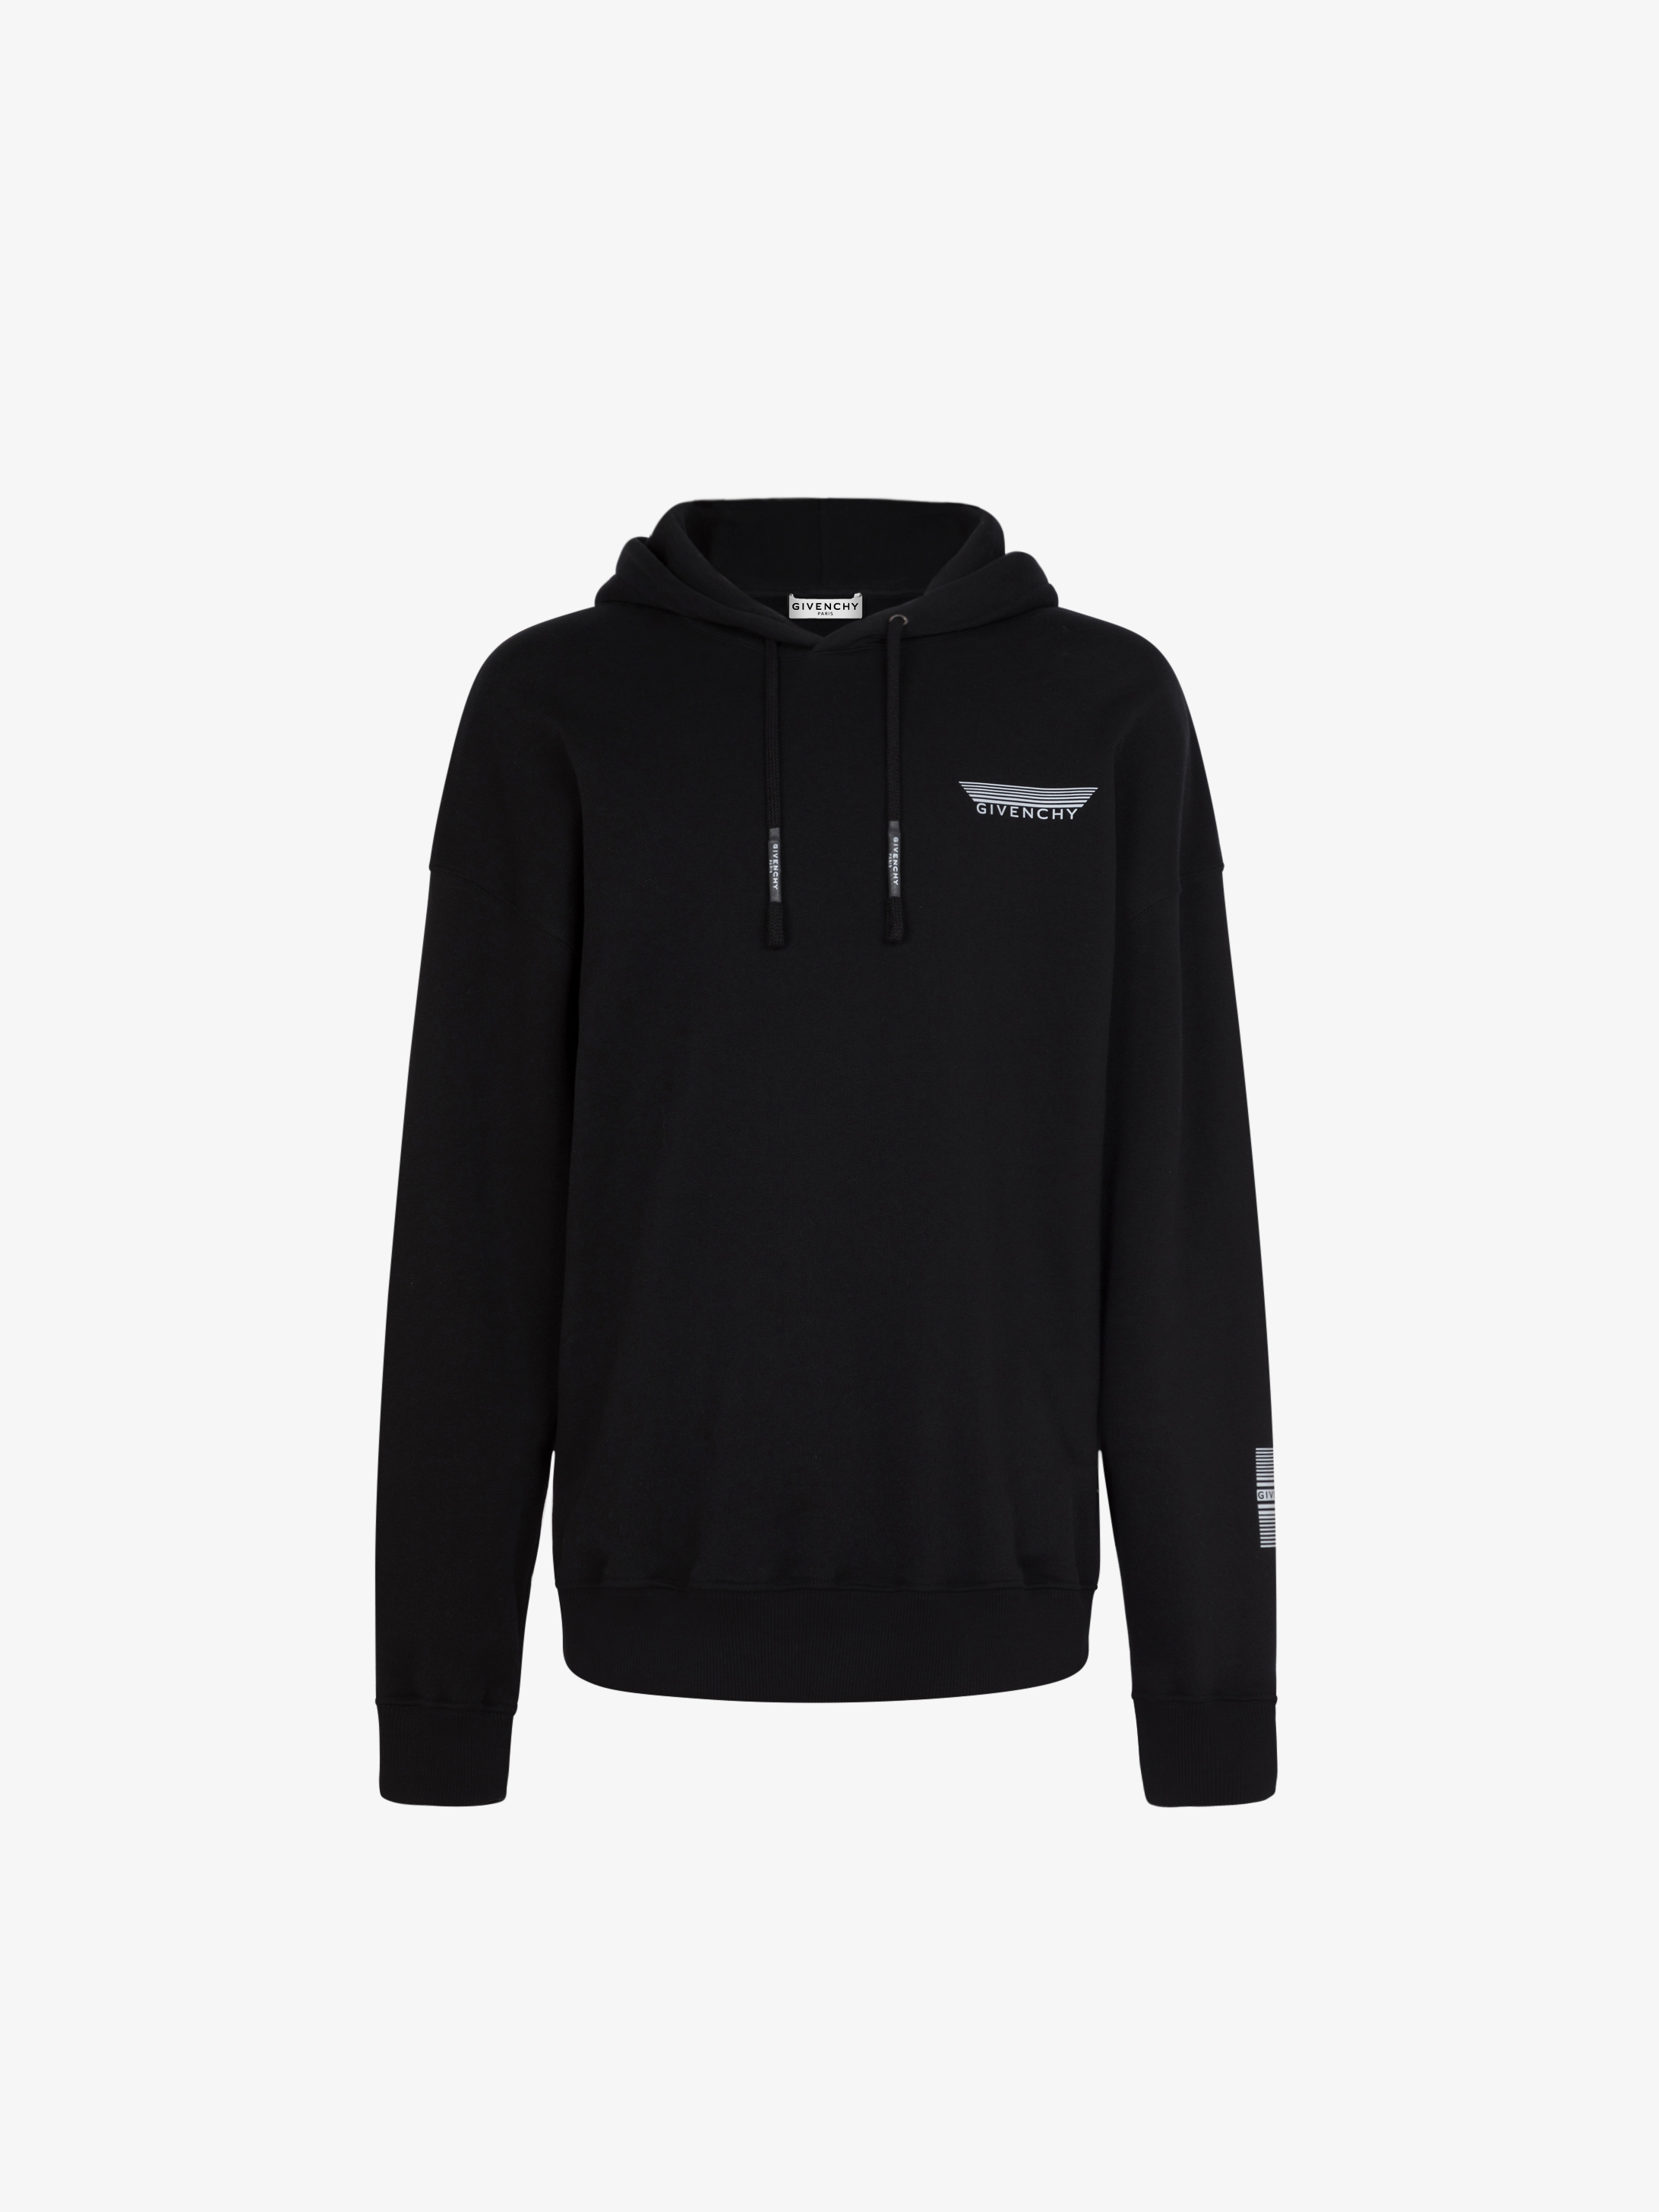 GIVENCHY reflective bands hoodie